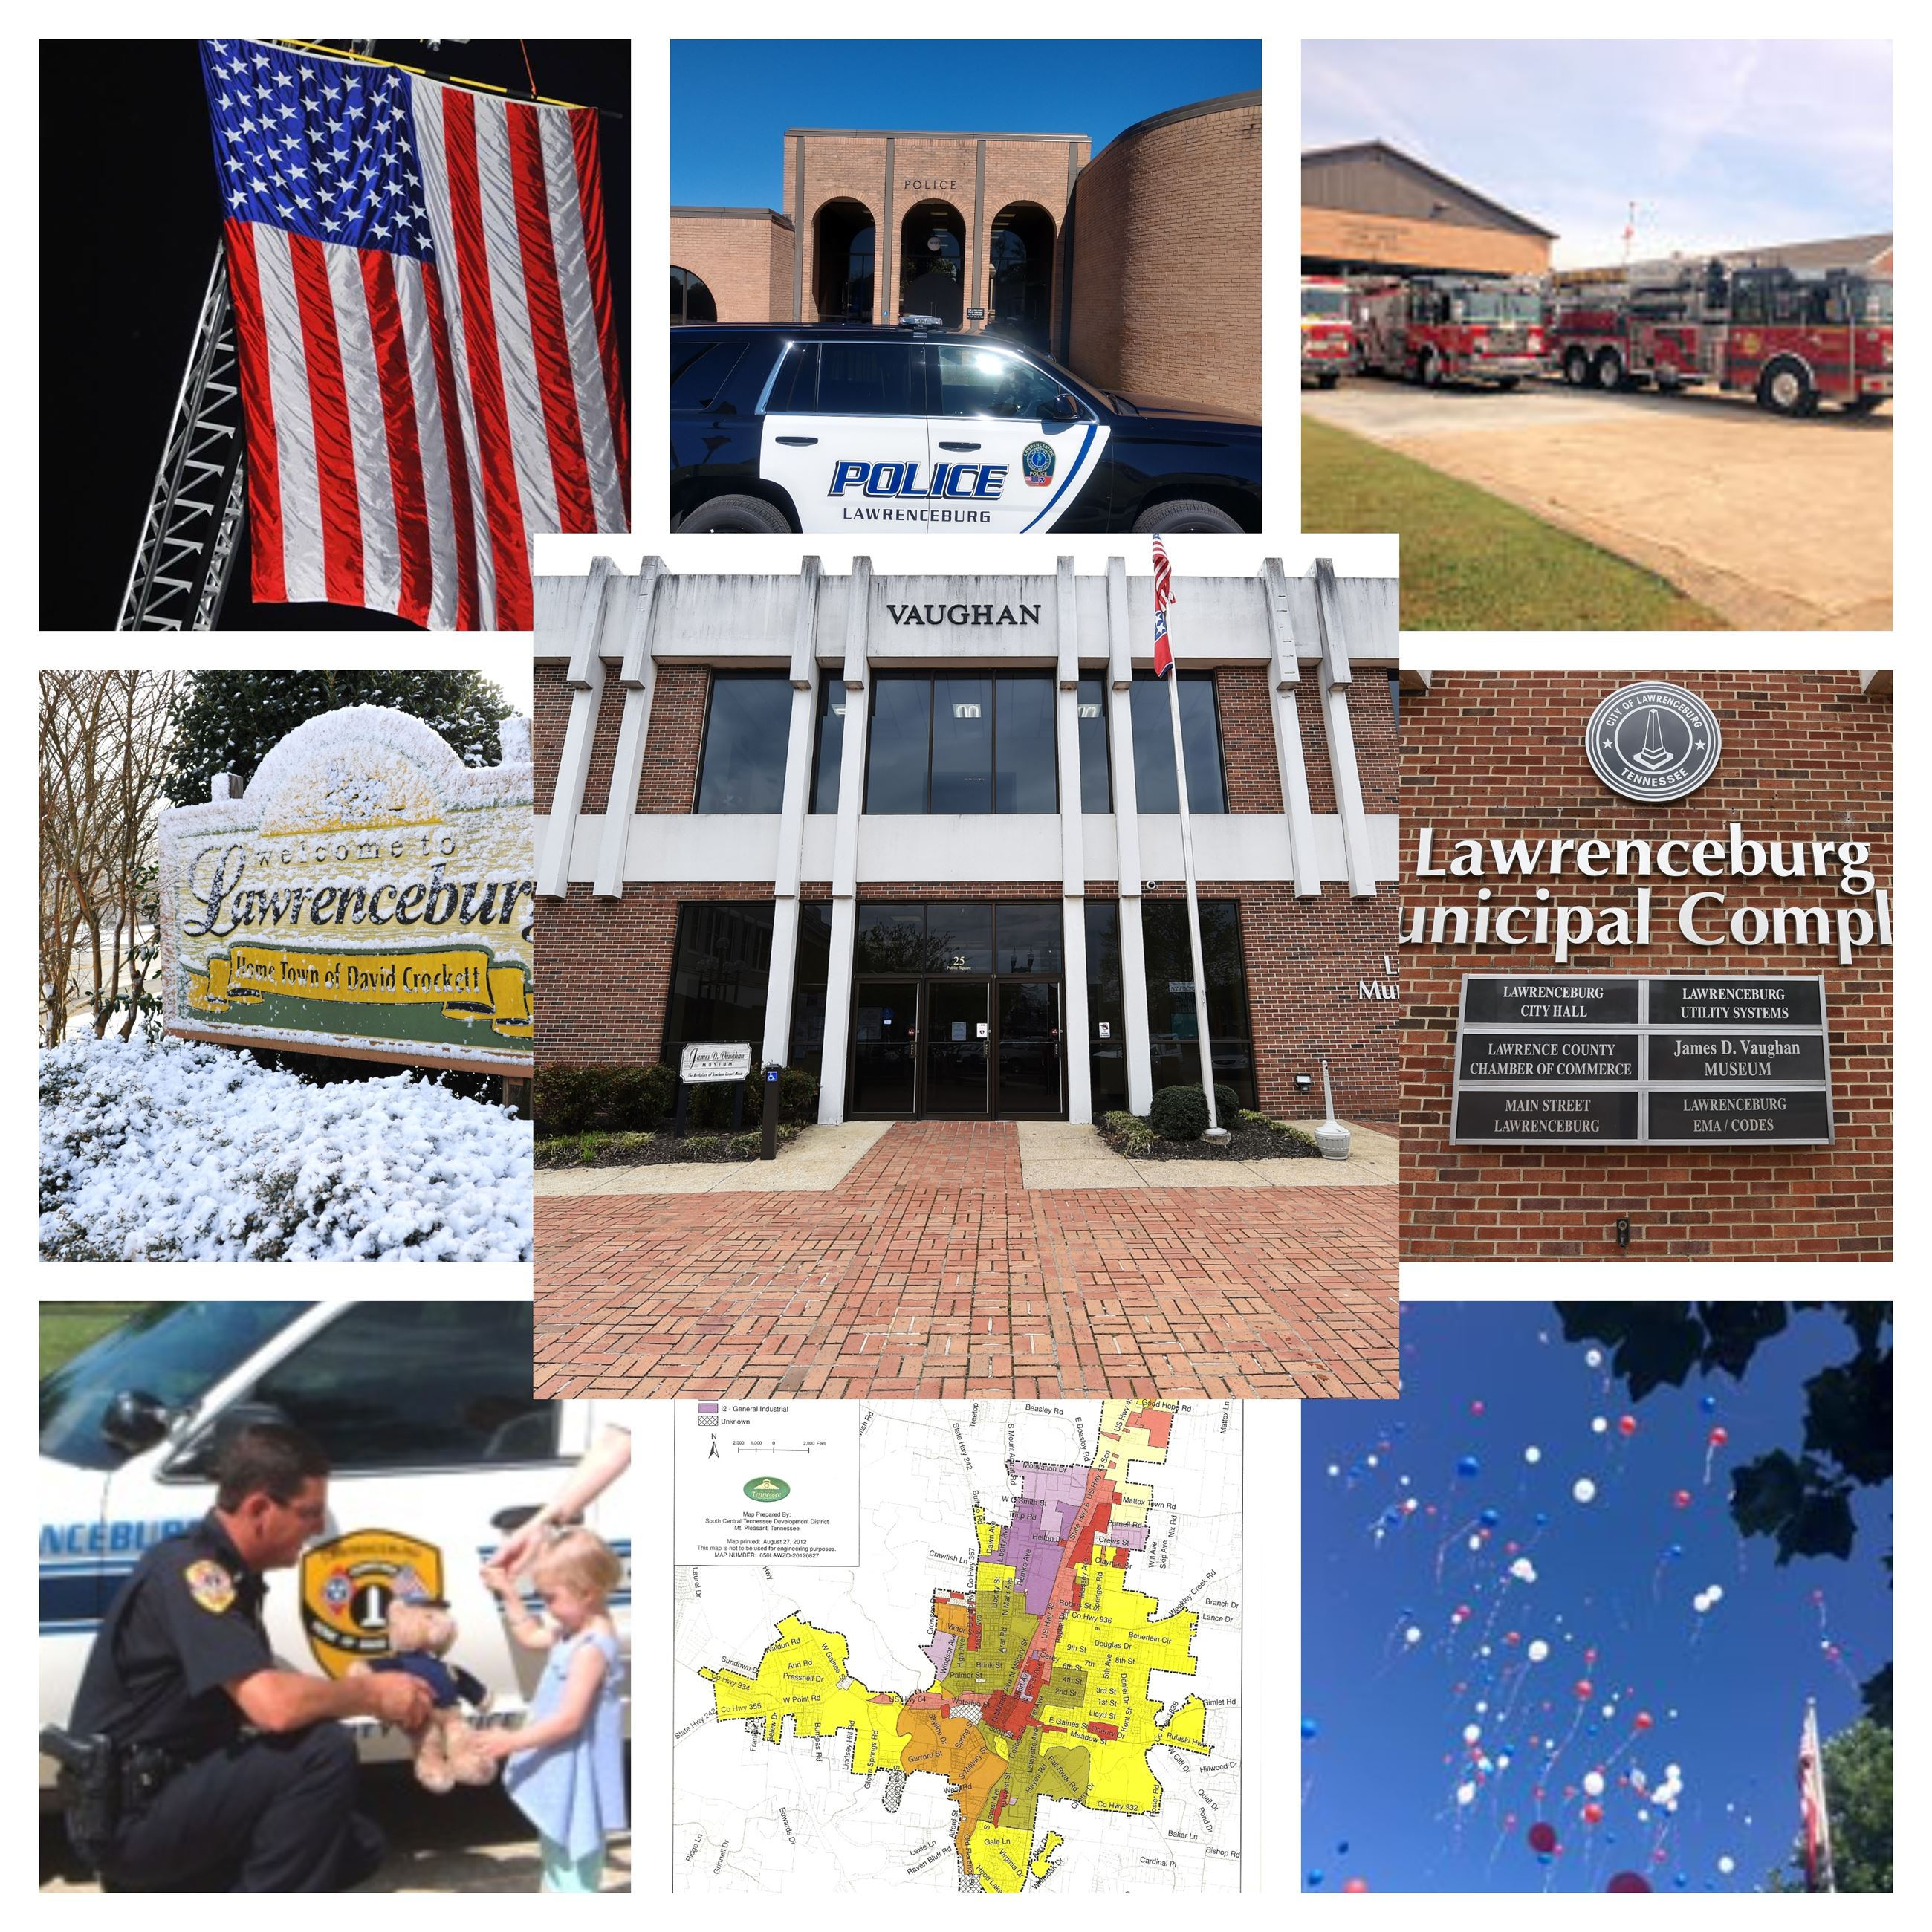 Collage of Police, Lawrenceburg Signs, Fire Department, and Map